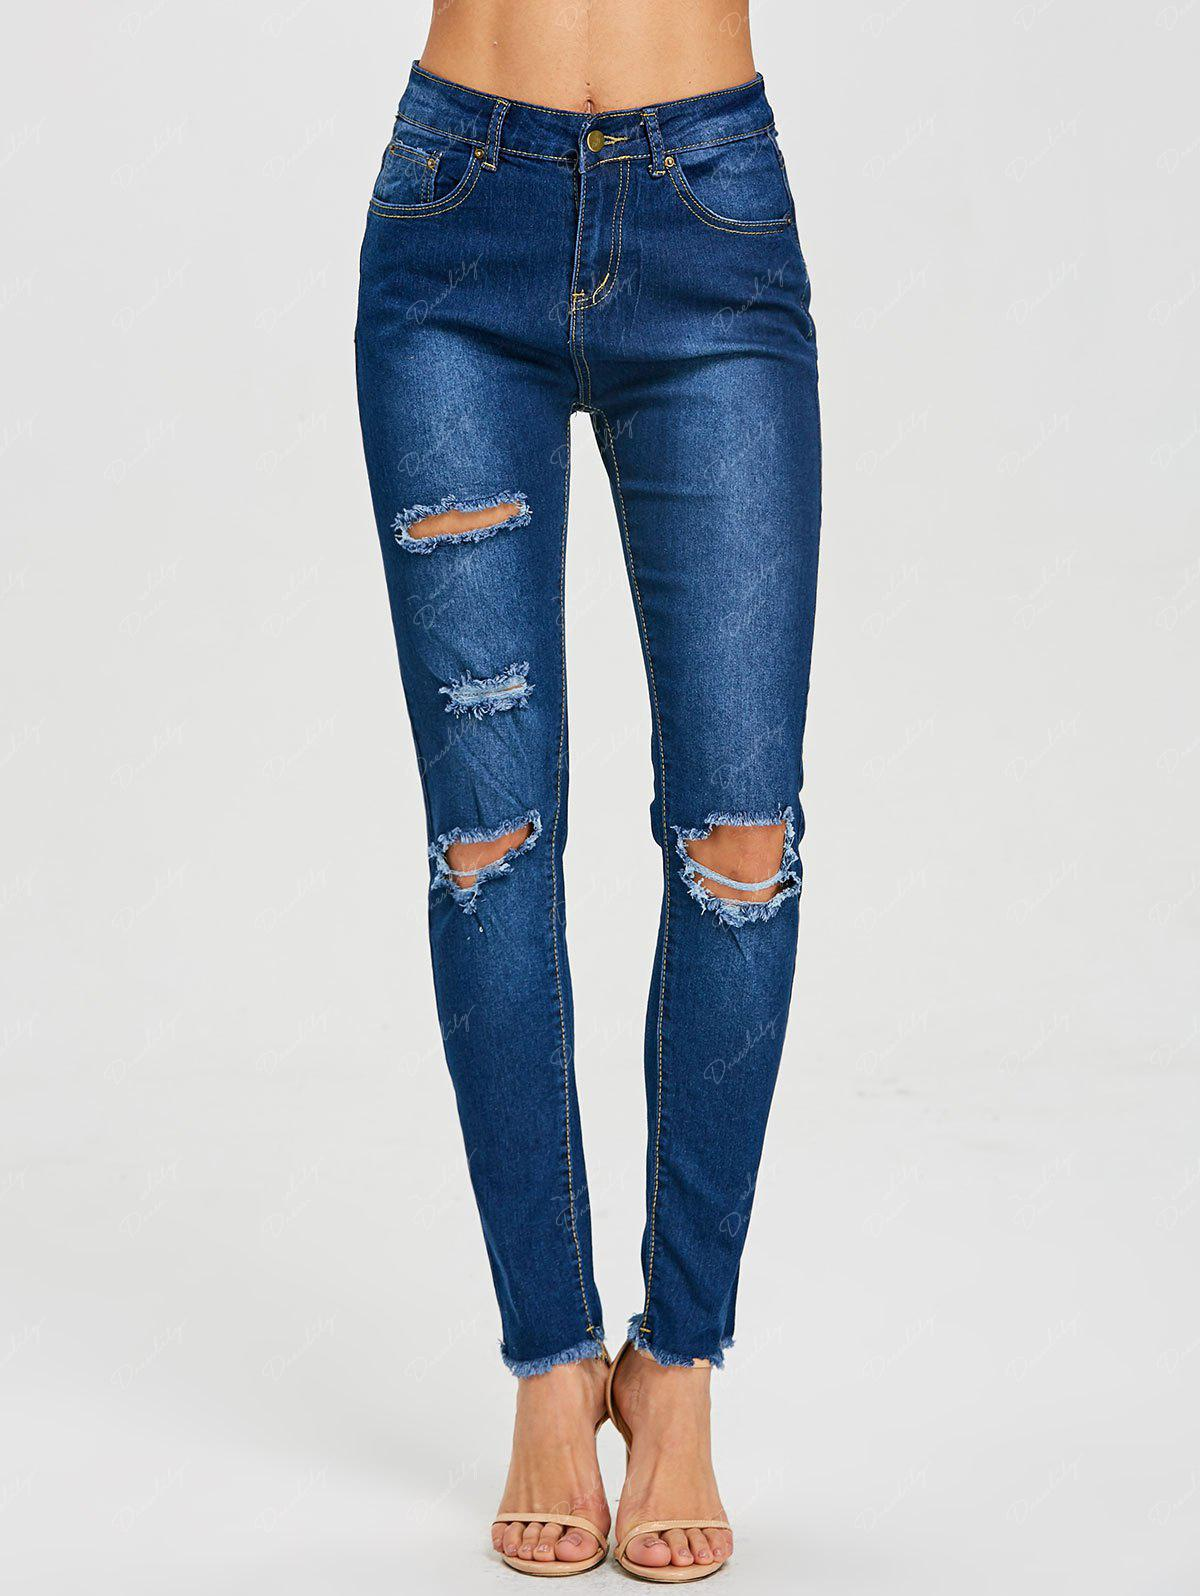 Skinny Ripped High Waisted Jeans - DEEP BLUE M